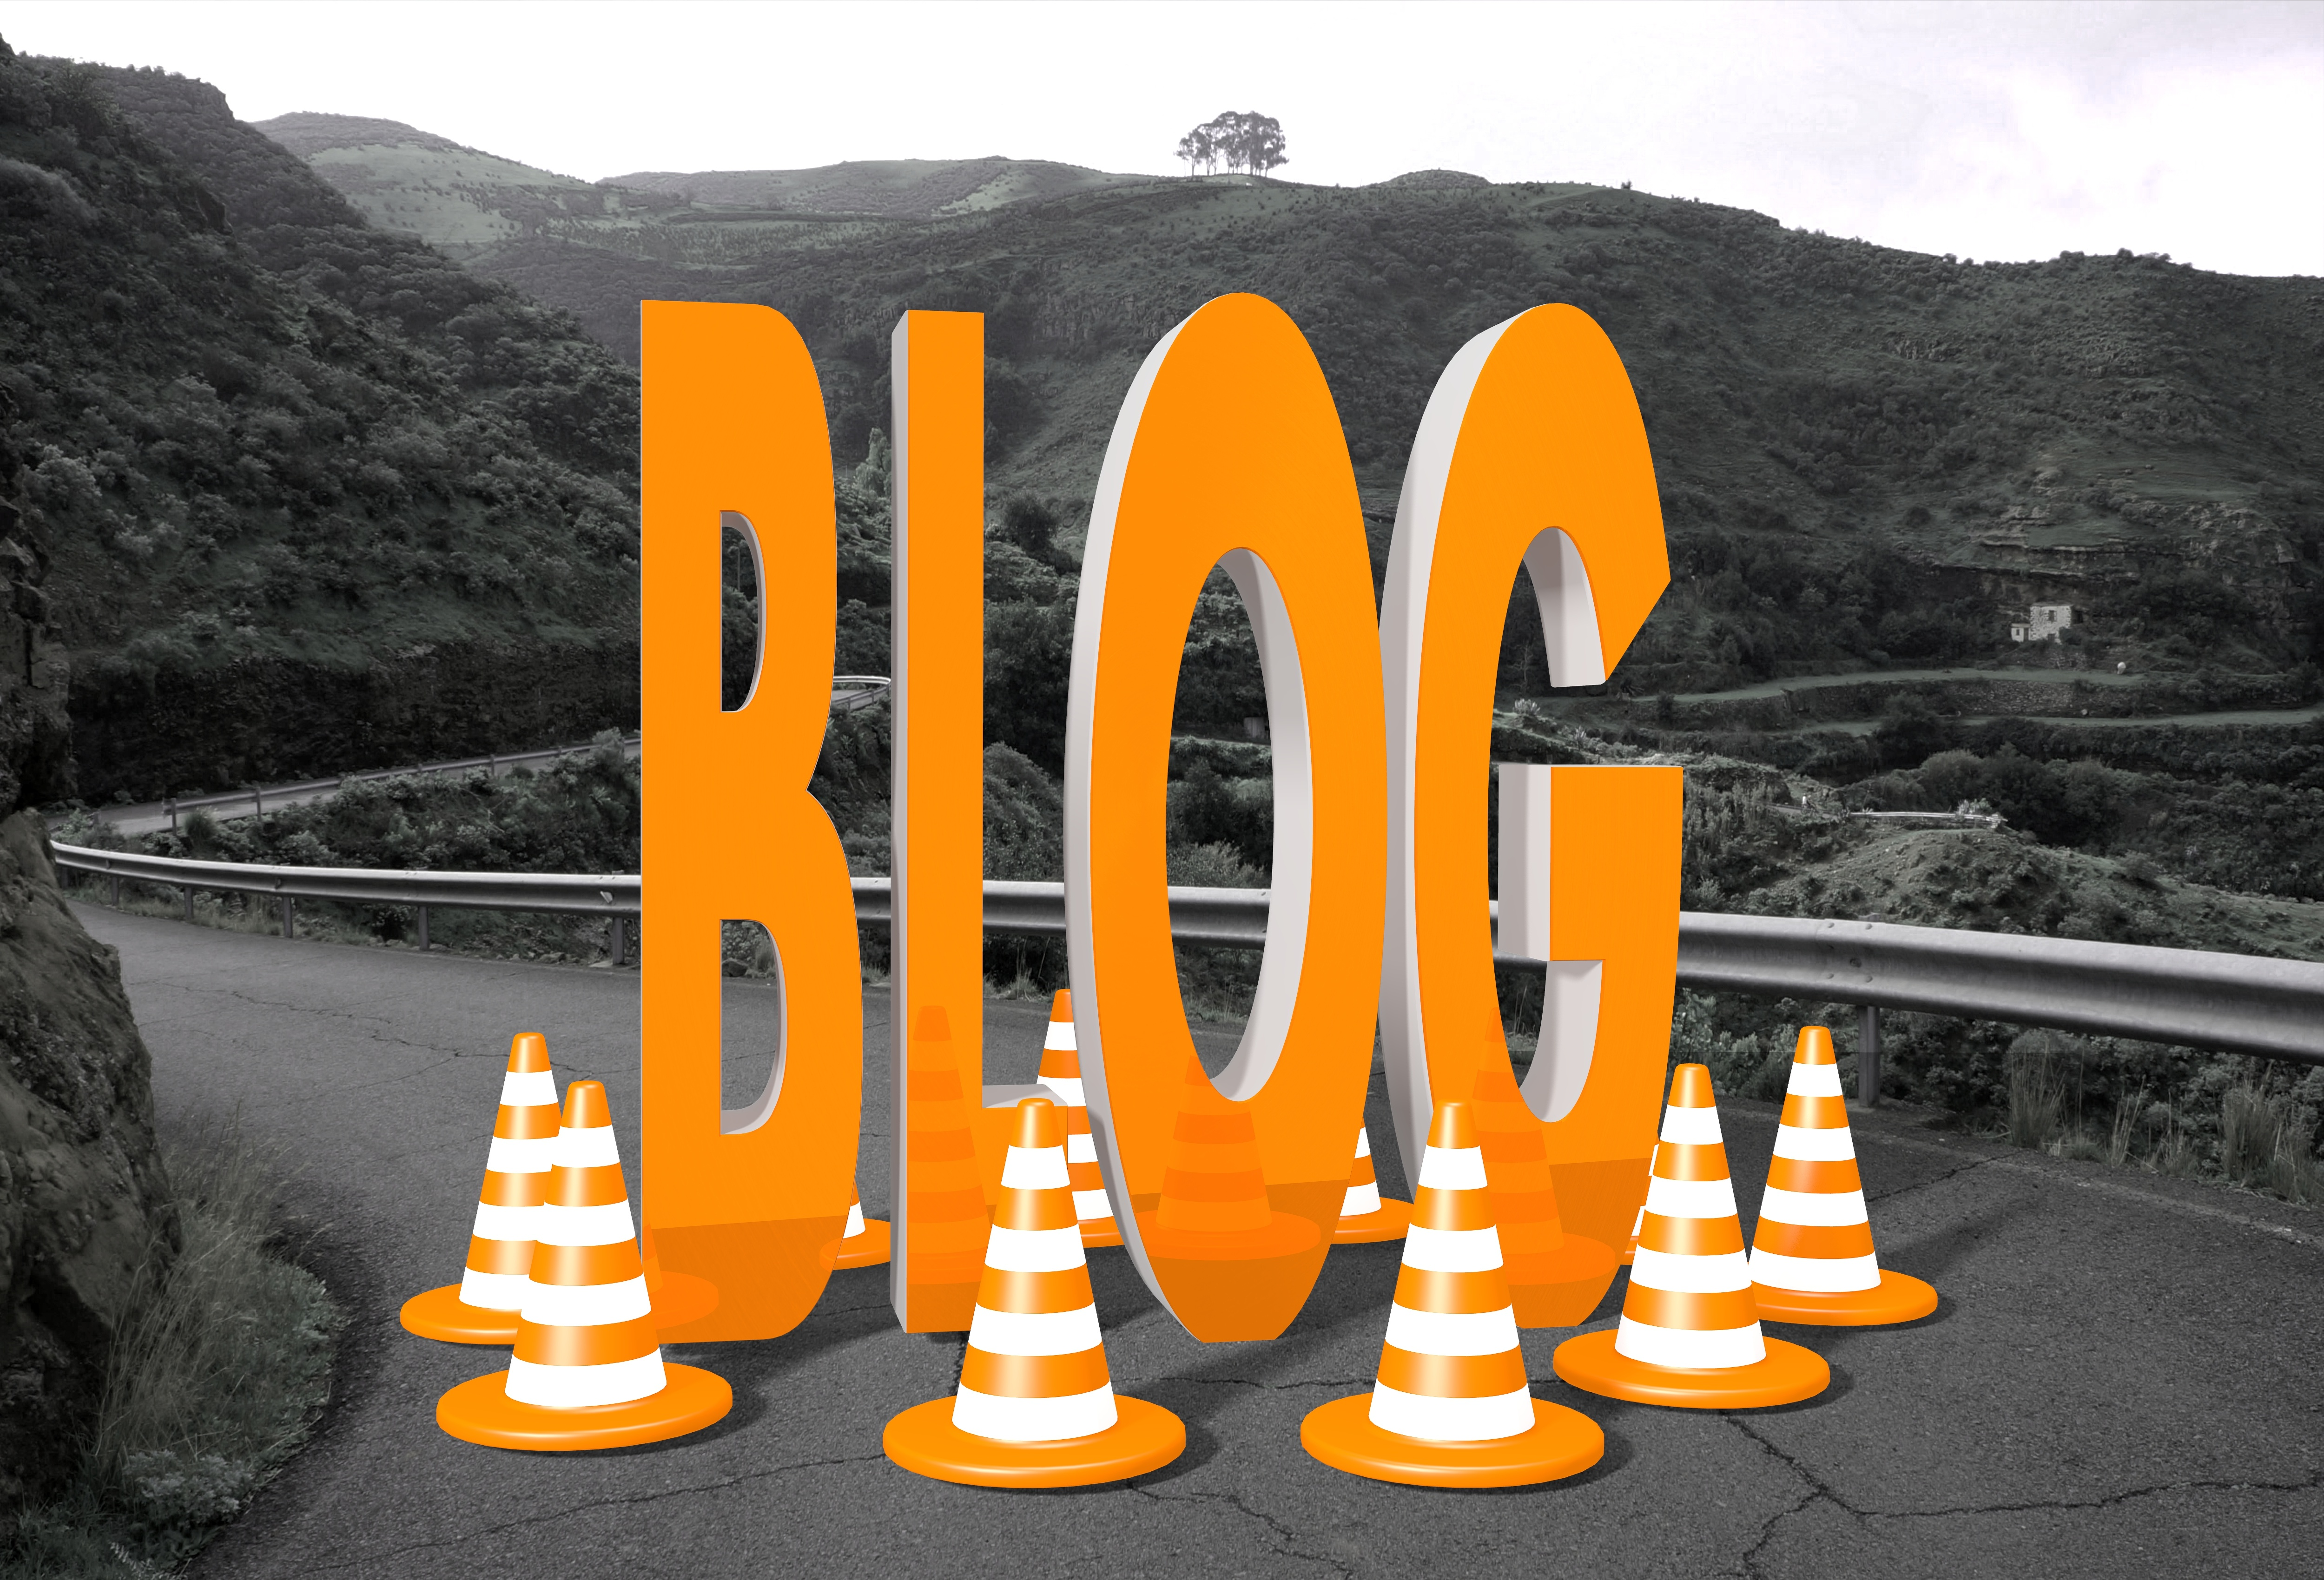 blog symbol on a road